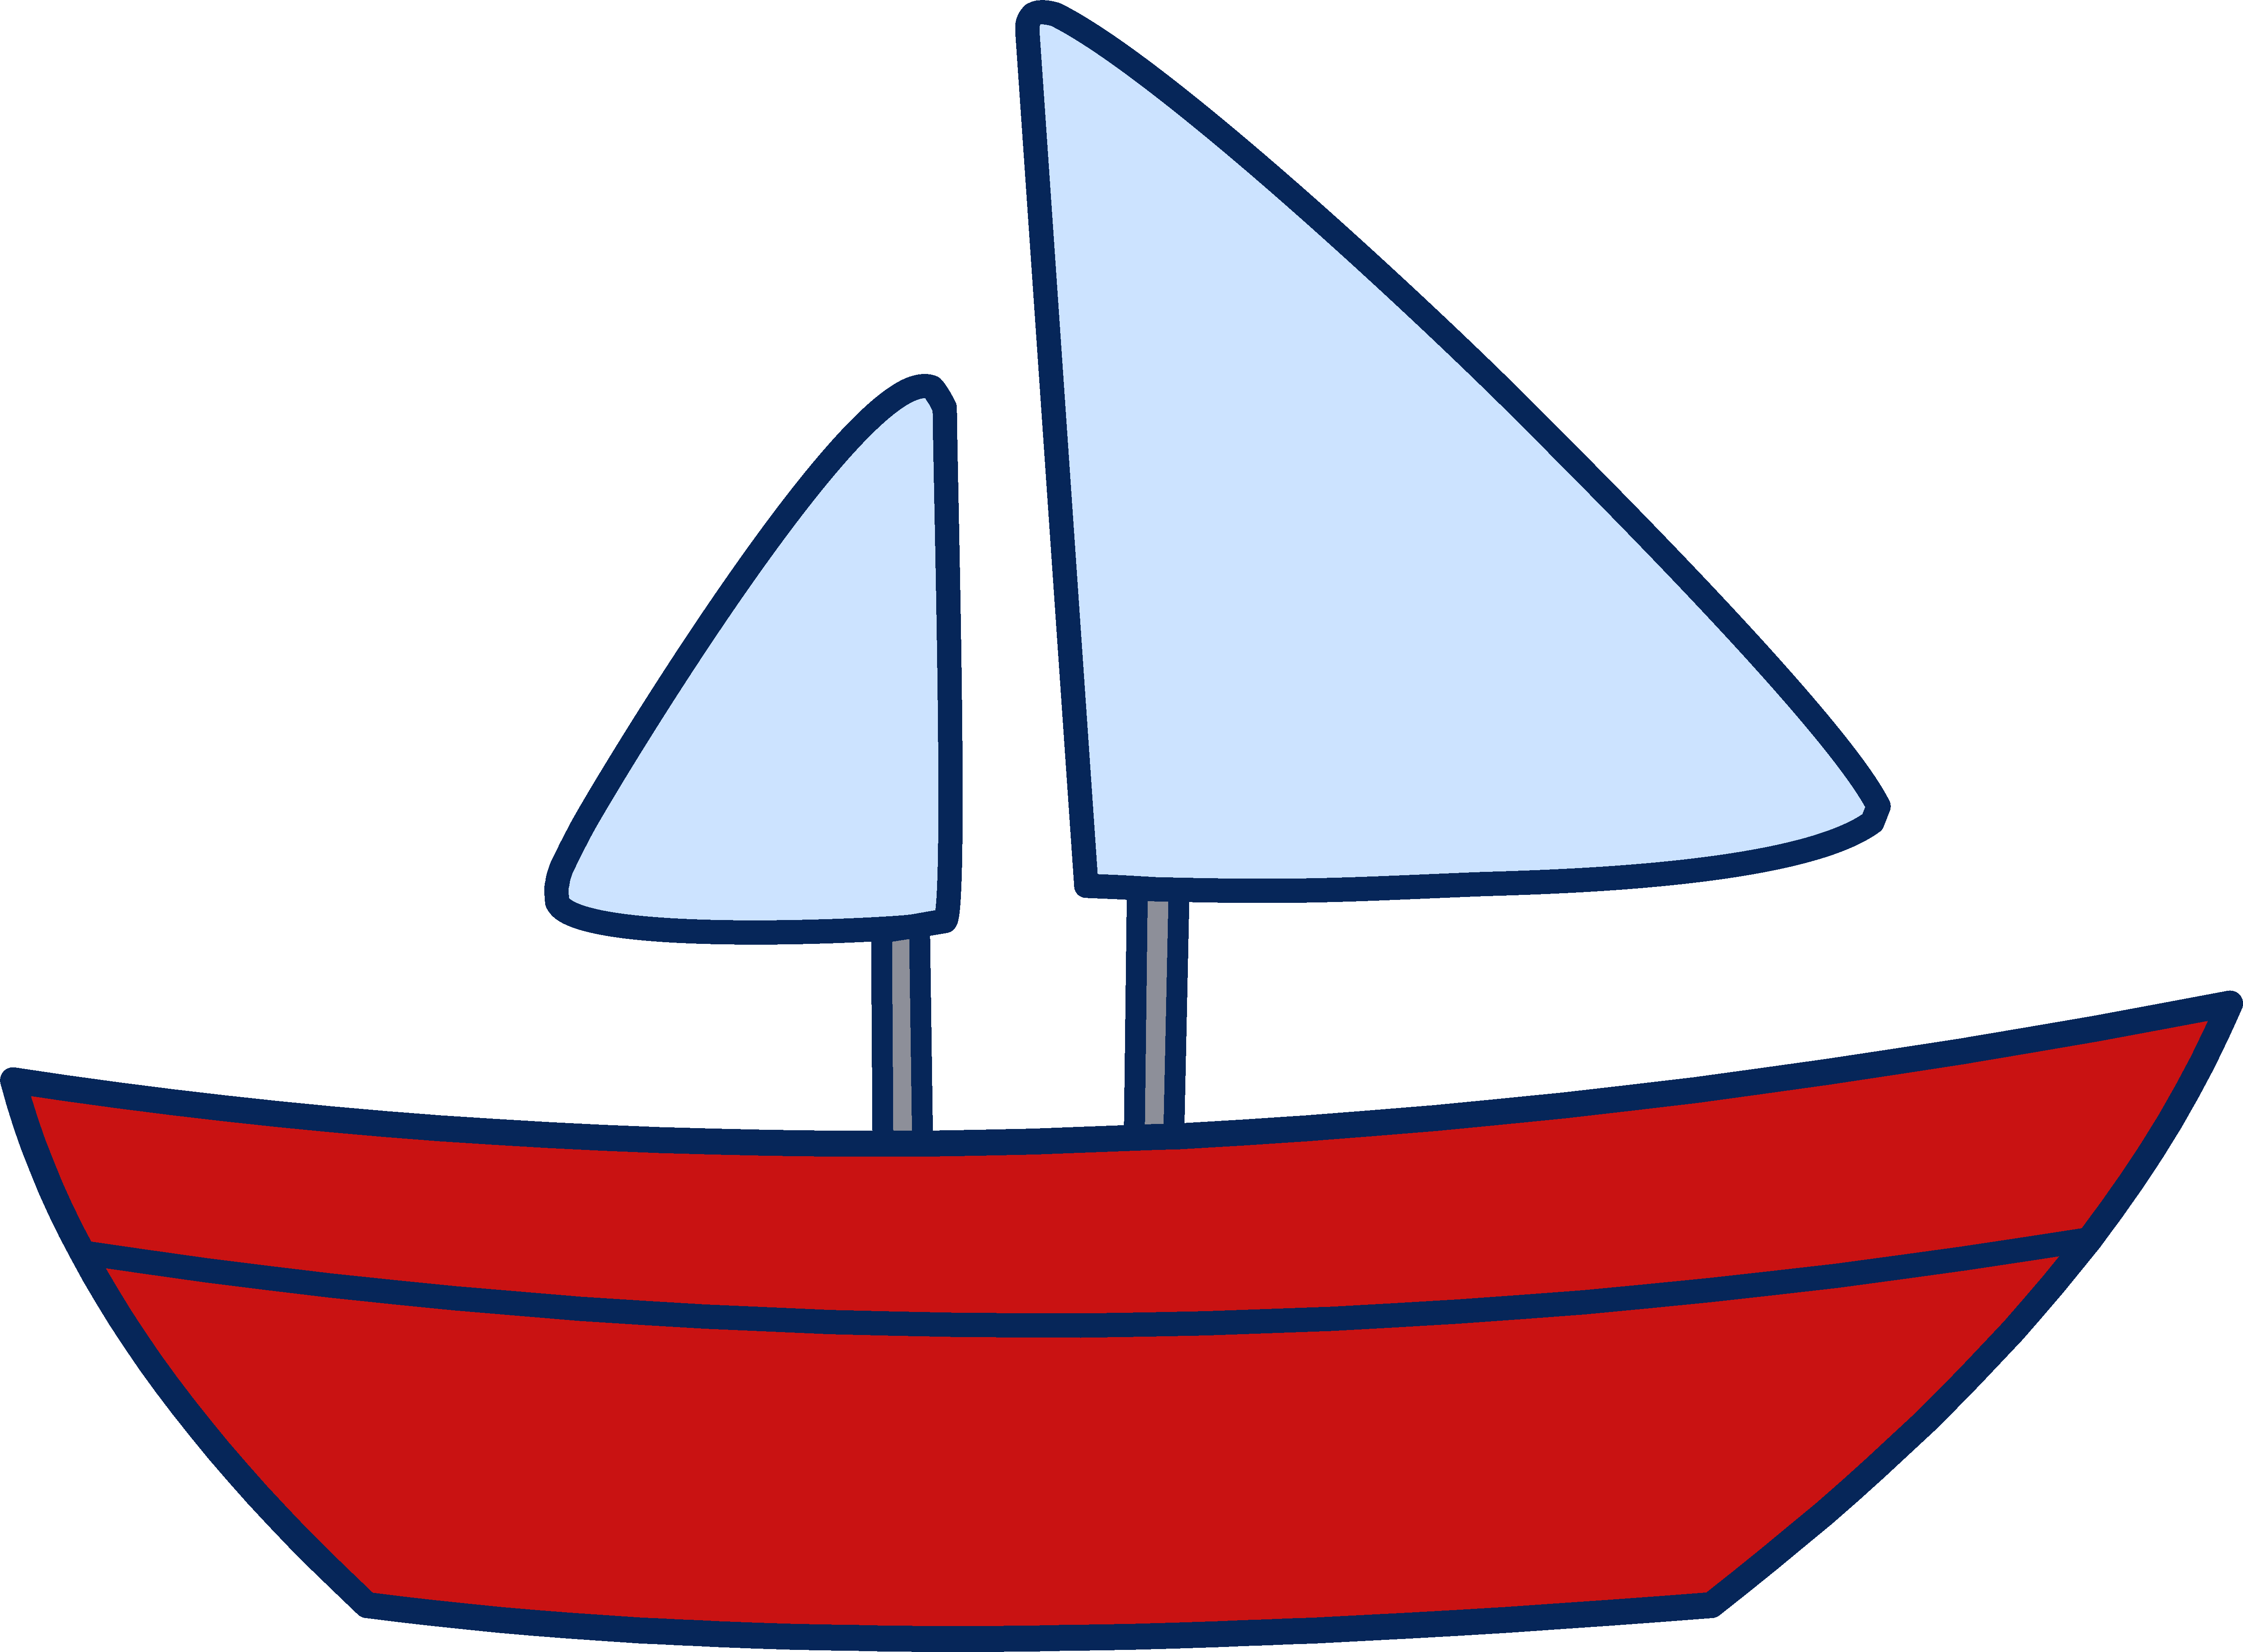 Cute Simple Sailboat Design - Free Clip Art